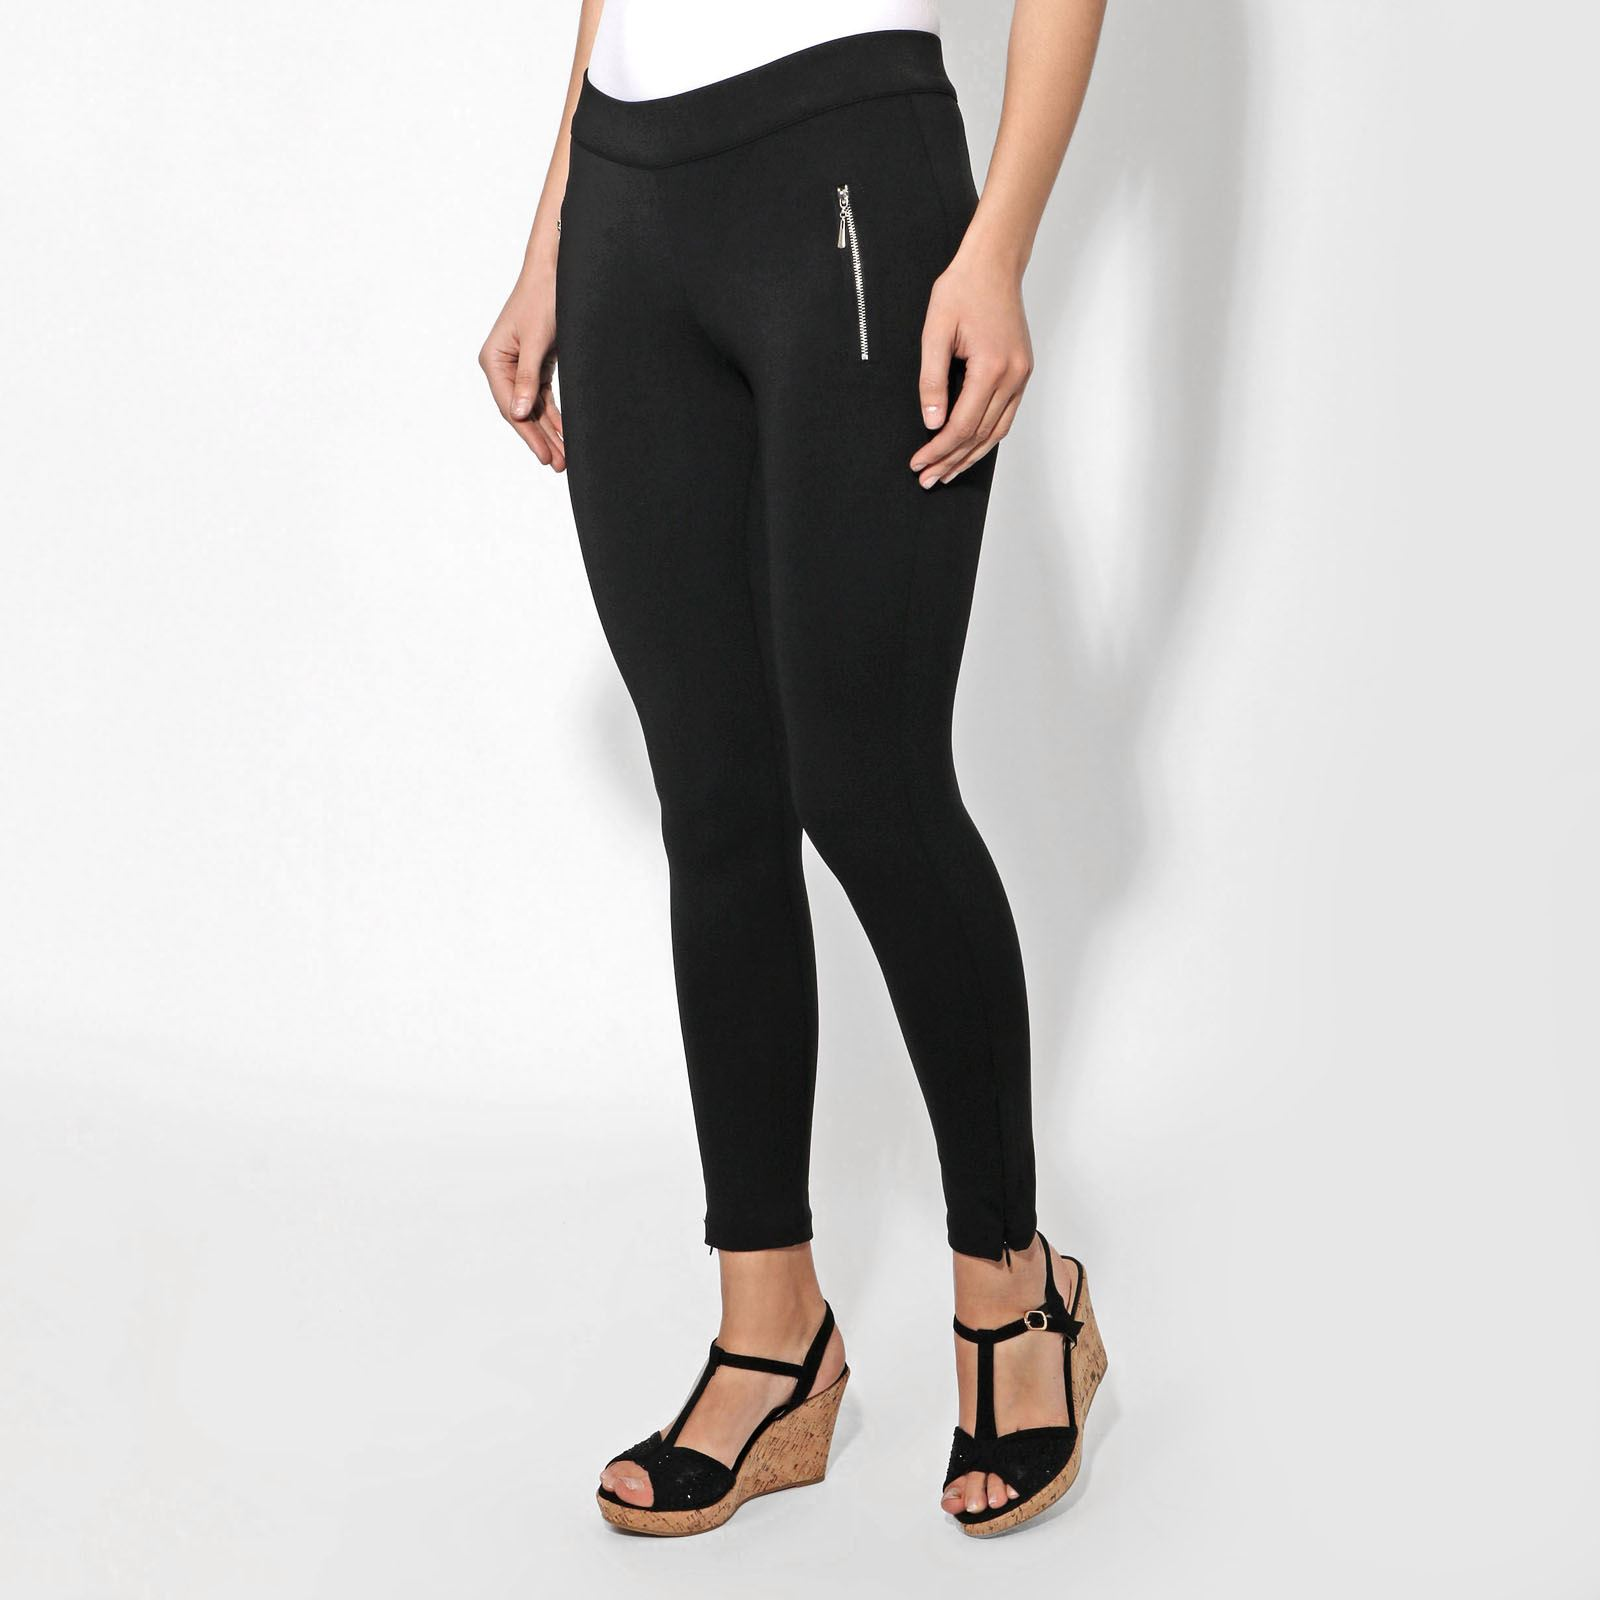 88845a448f581 Women Ankle Zip Black Jeggings Ladies Stretch Trousers Leggings Pull On  Pants